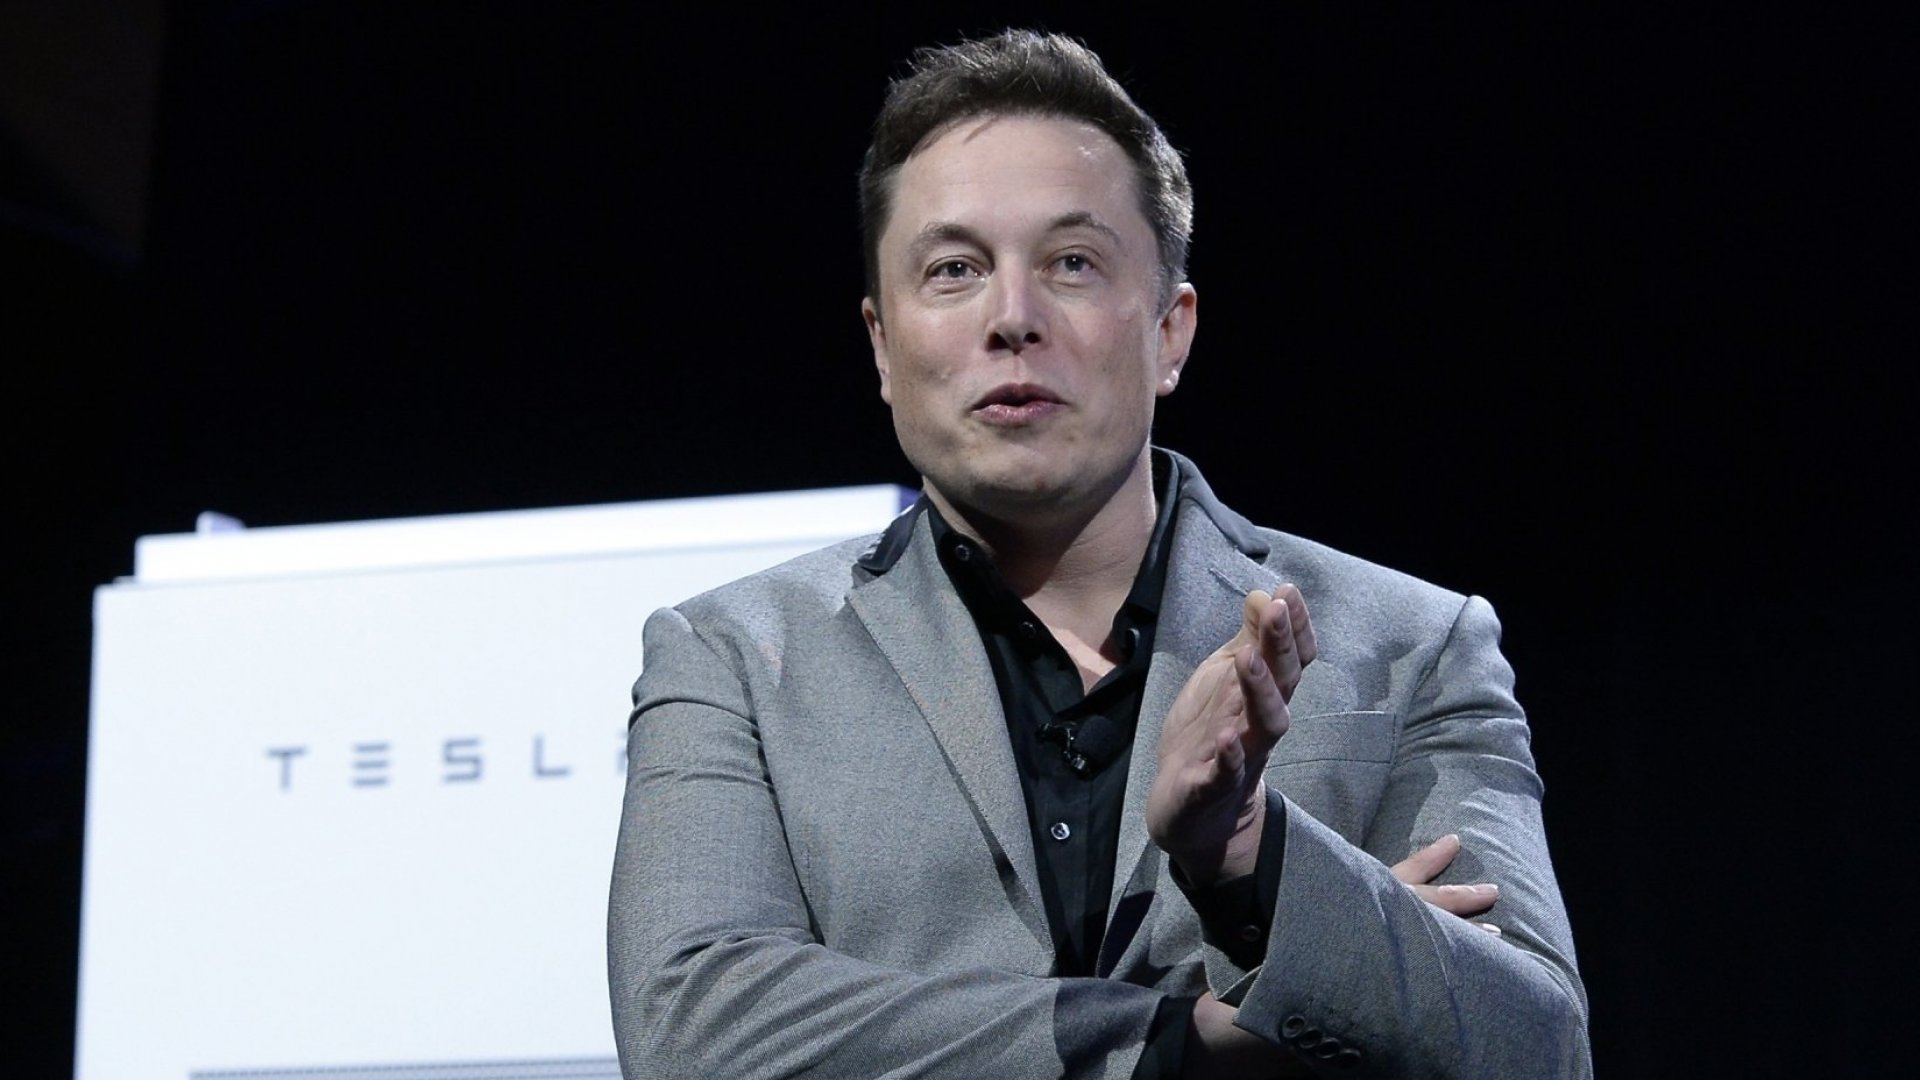 3 Reasons Why Tesla Shareholders Shouldn't Be Scandalized by Elon Musk's Idealism